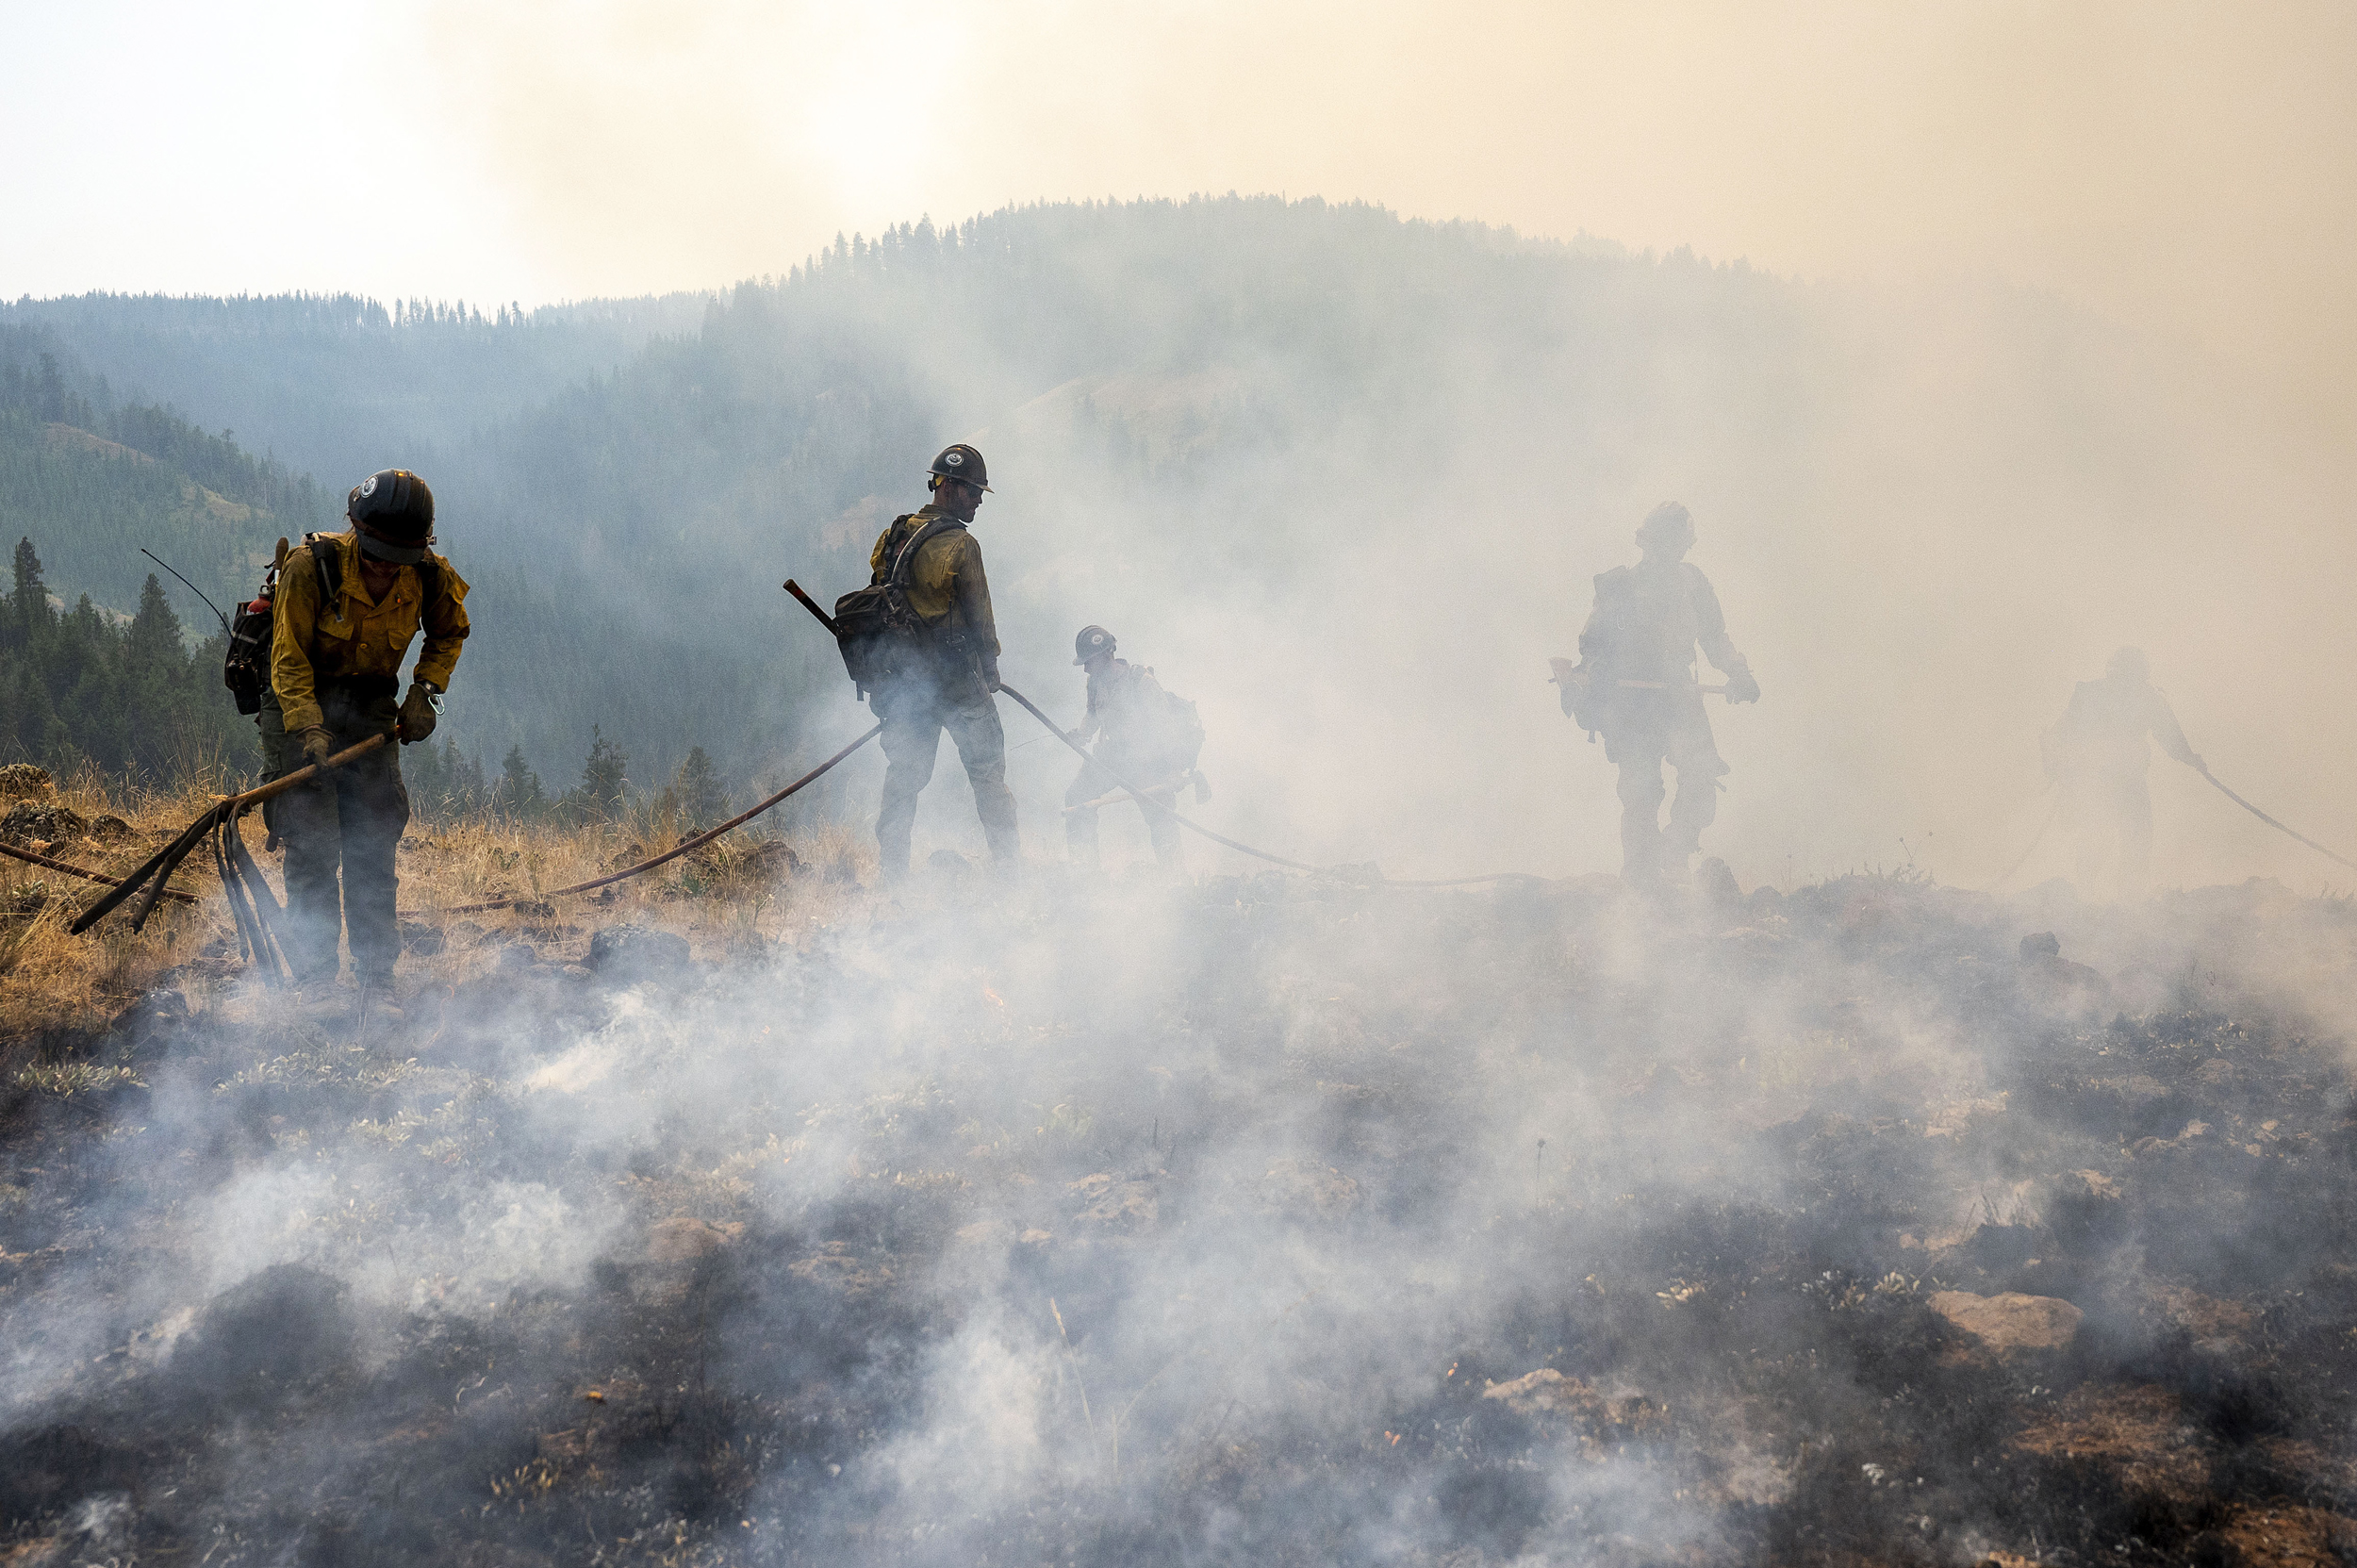 Wildland firefighters faced with shrinking water, food, communications supplies